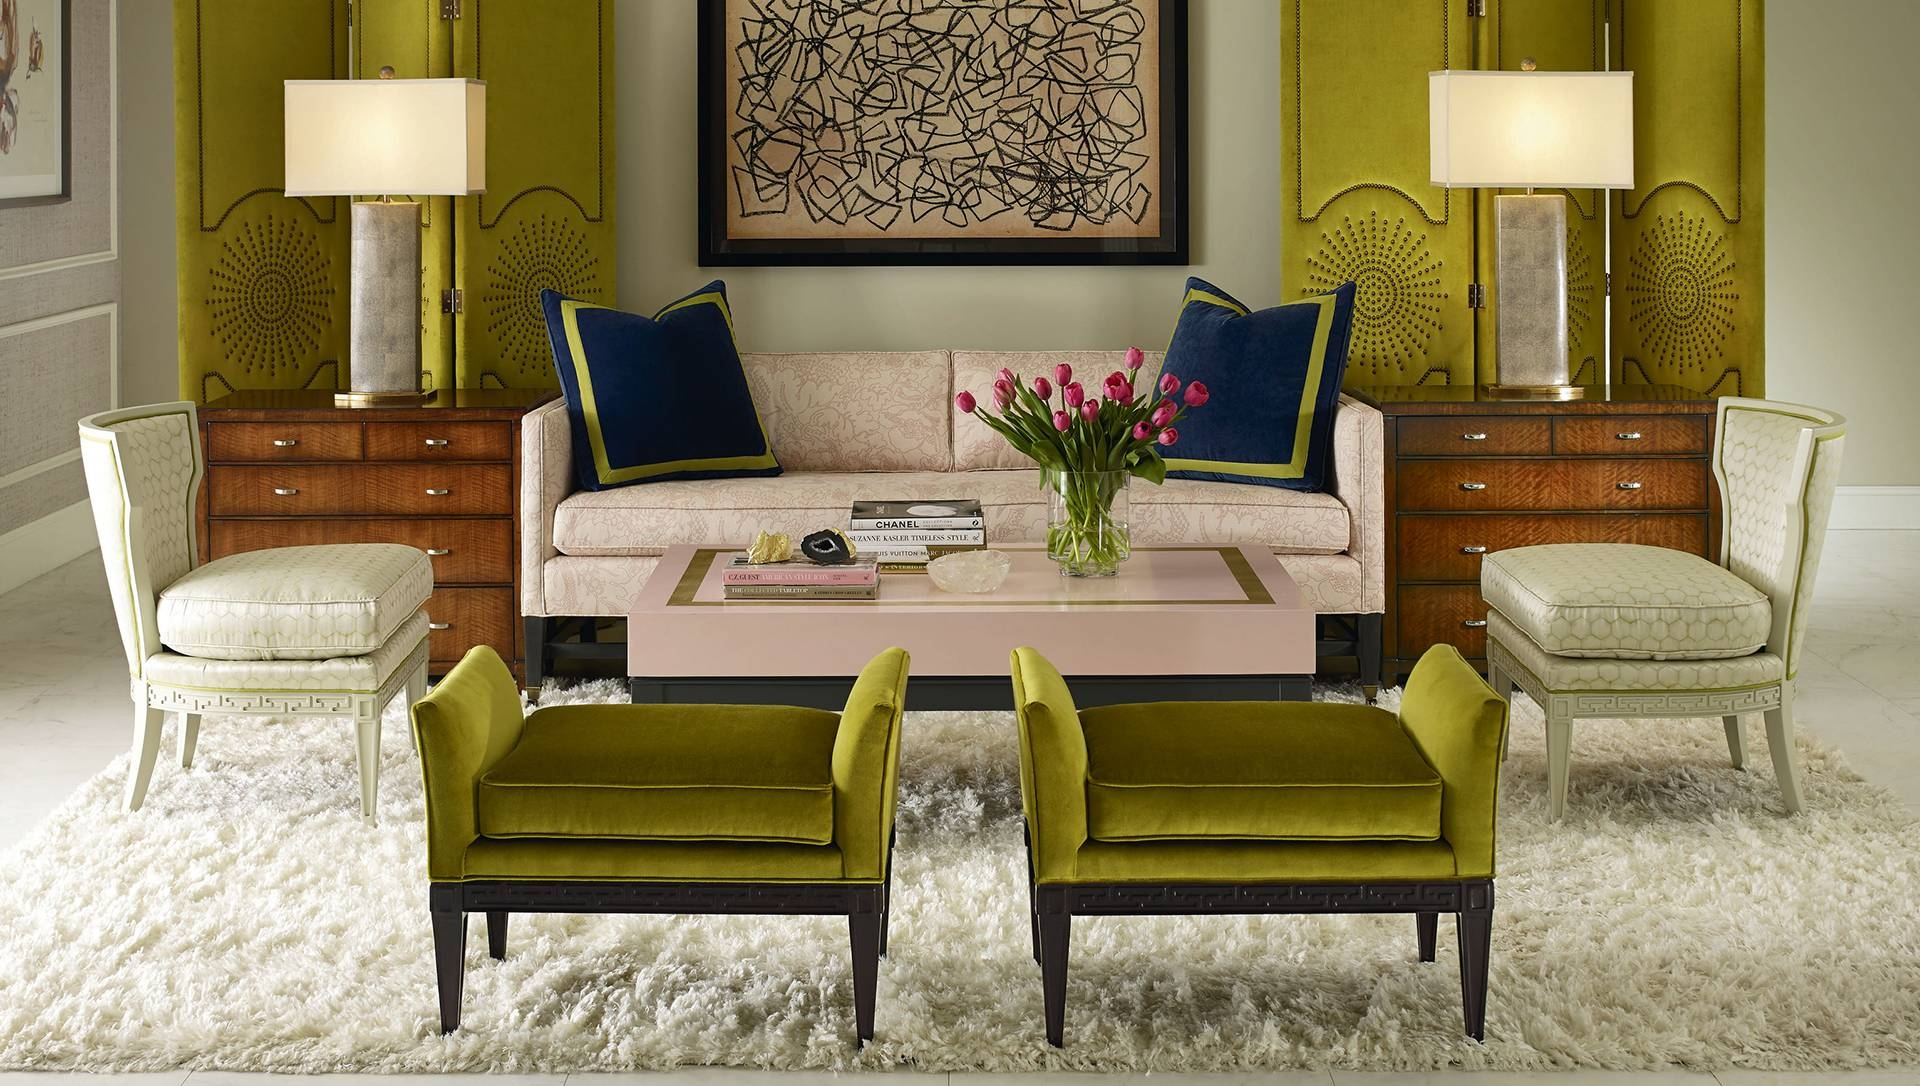 Cr Laine Home Page in Yellow Sofa Chairs (Image 12 of 30)